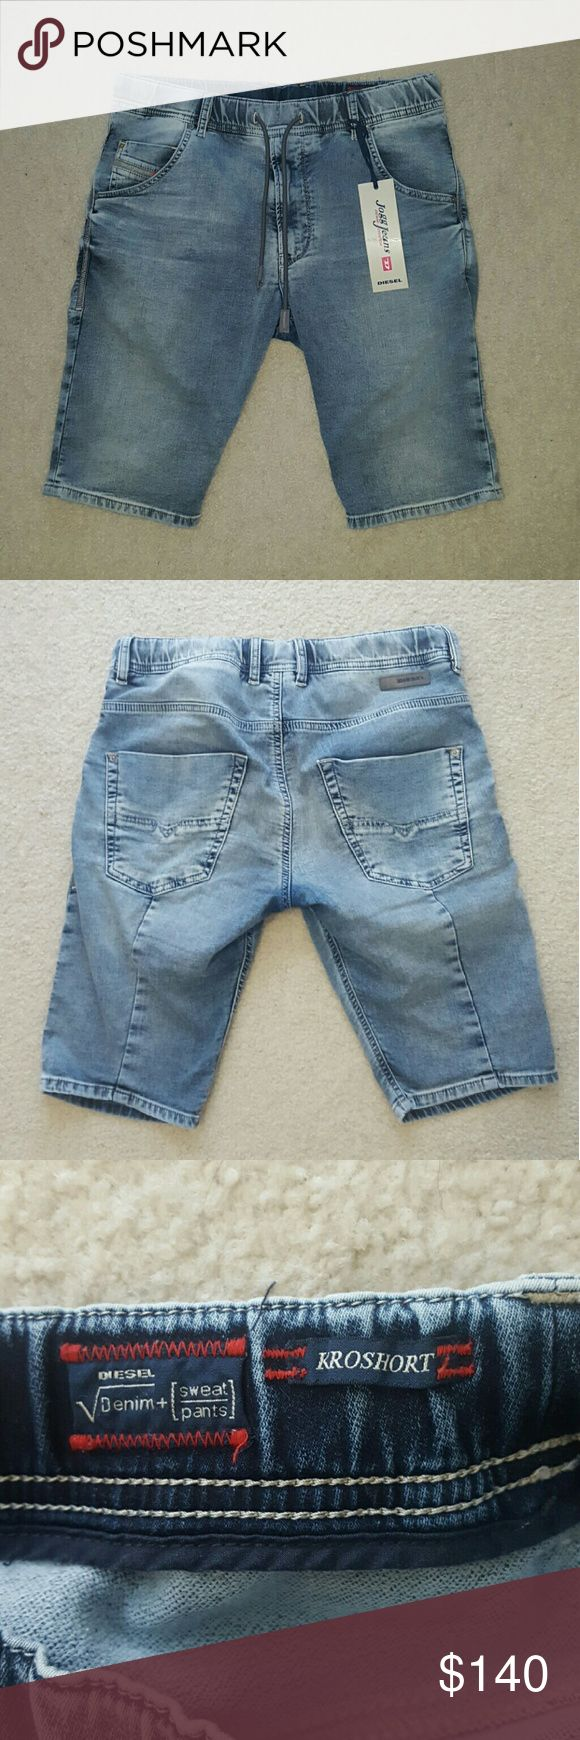 DIESEL KROSHORT JOGGJEANS Brand new comes with tag Diesel Shorts Jean Shorts